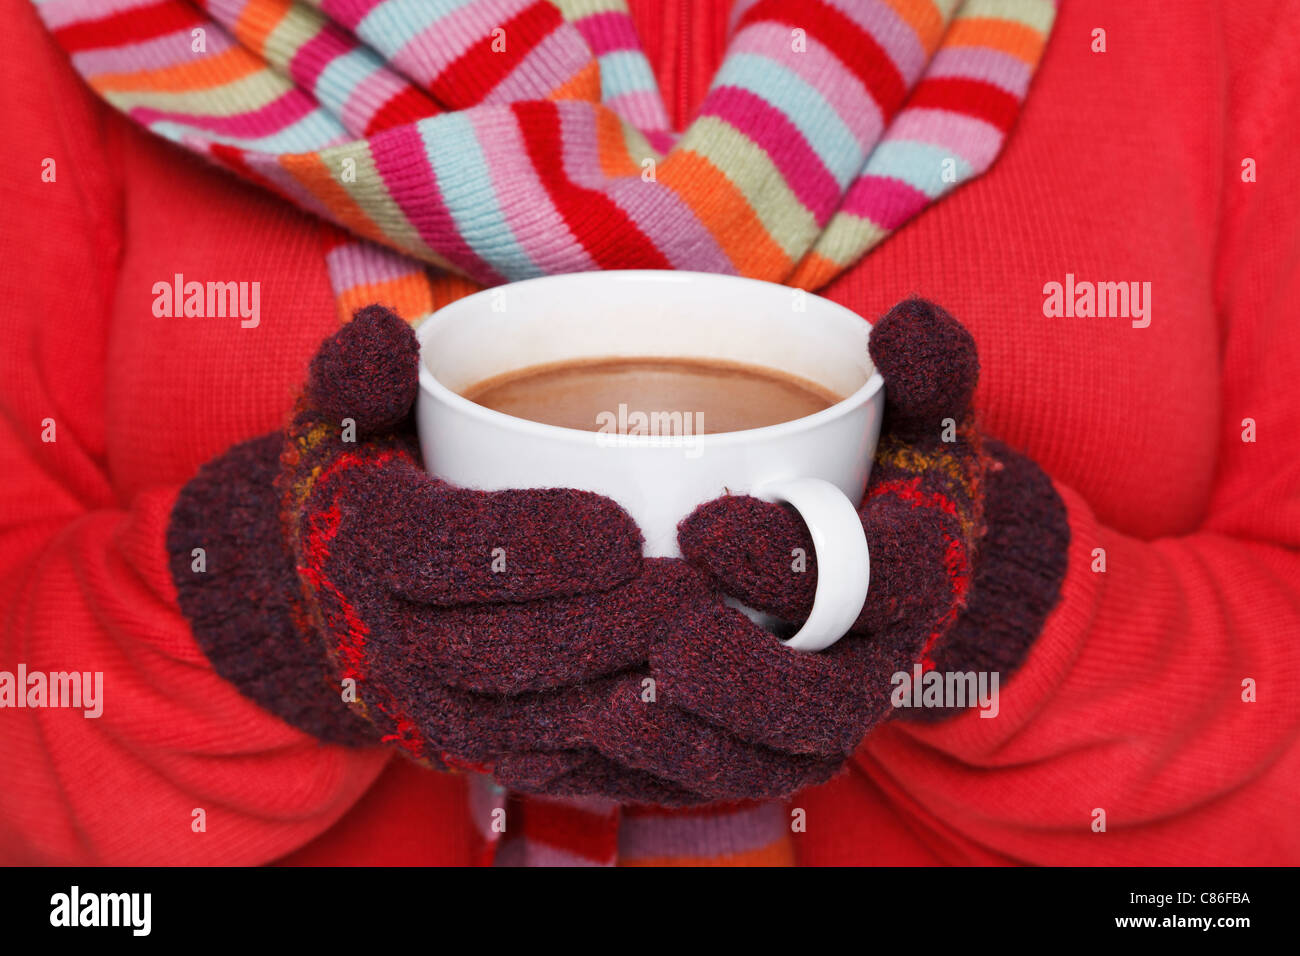 Close up midriff photo of a woman wearing a red jumper, woolen gloves and a scarf holding a mug full of hot chocolate - Stock Image